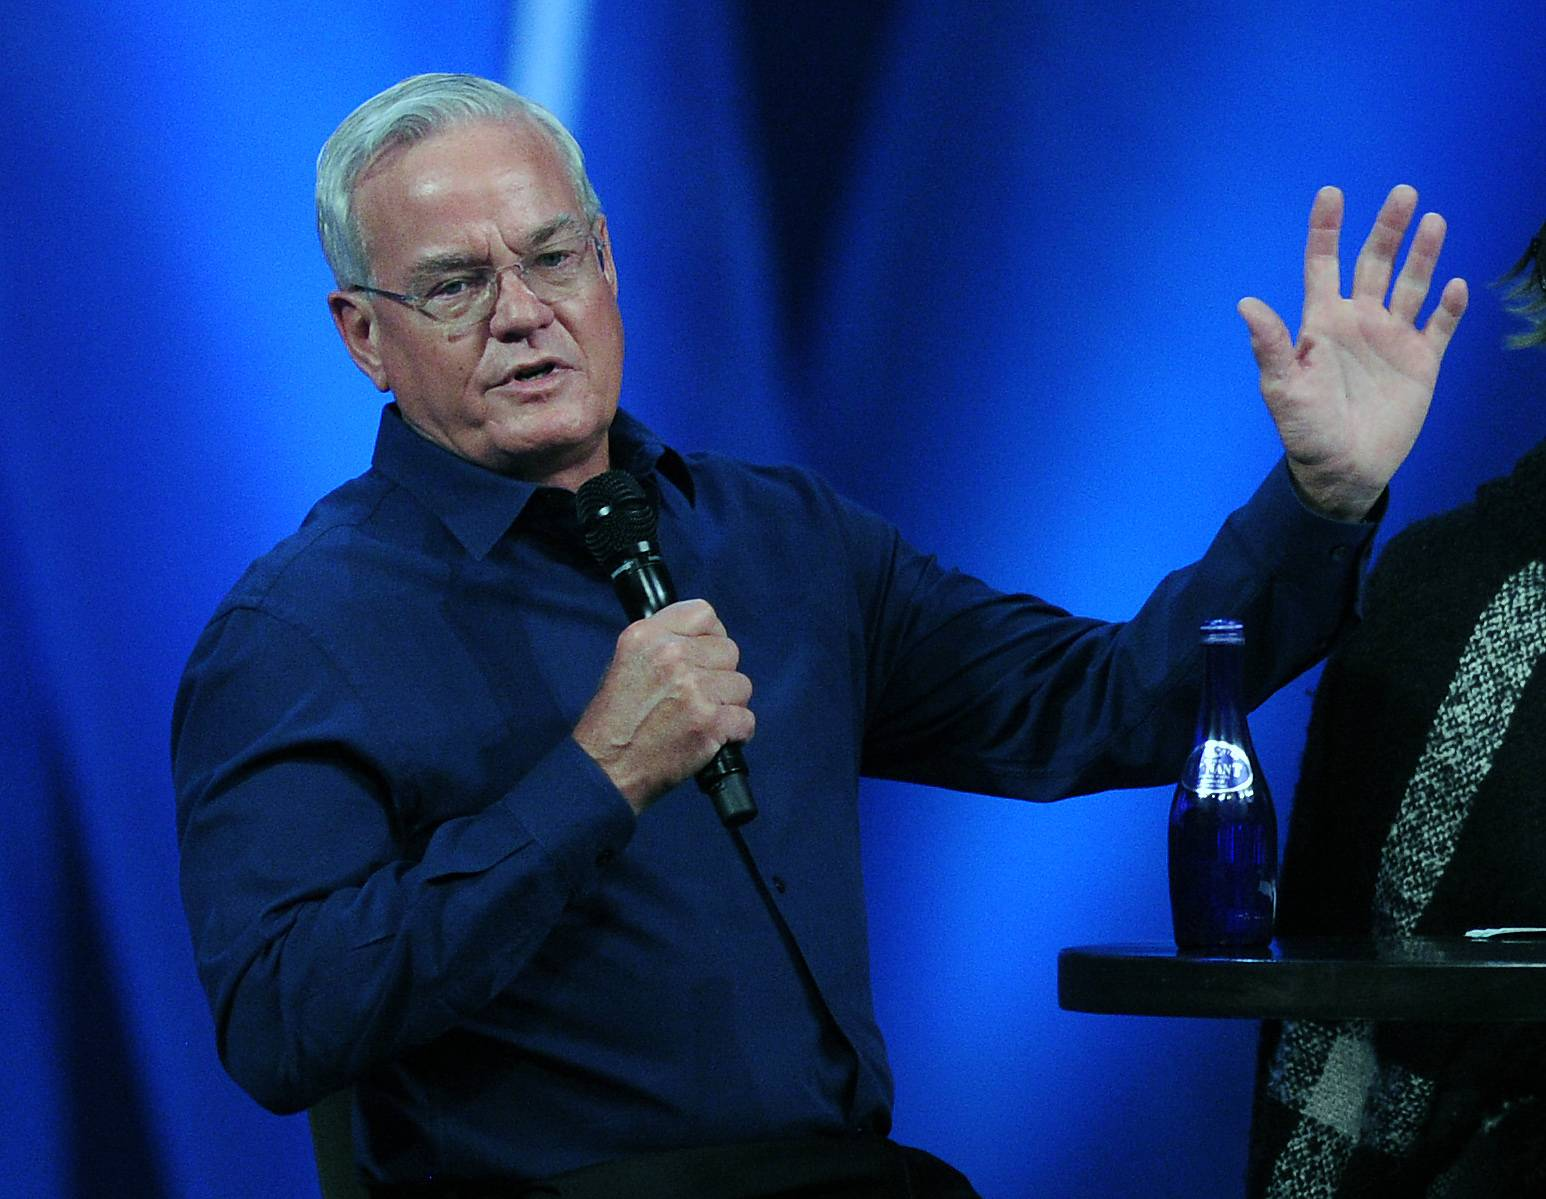 Willow Creek talking with Hybels' accusers through third party